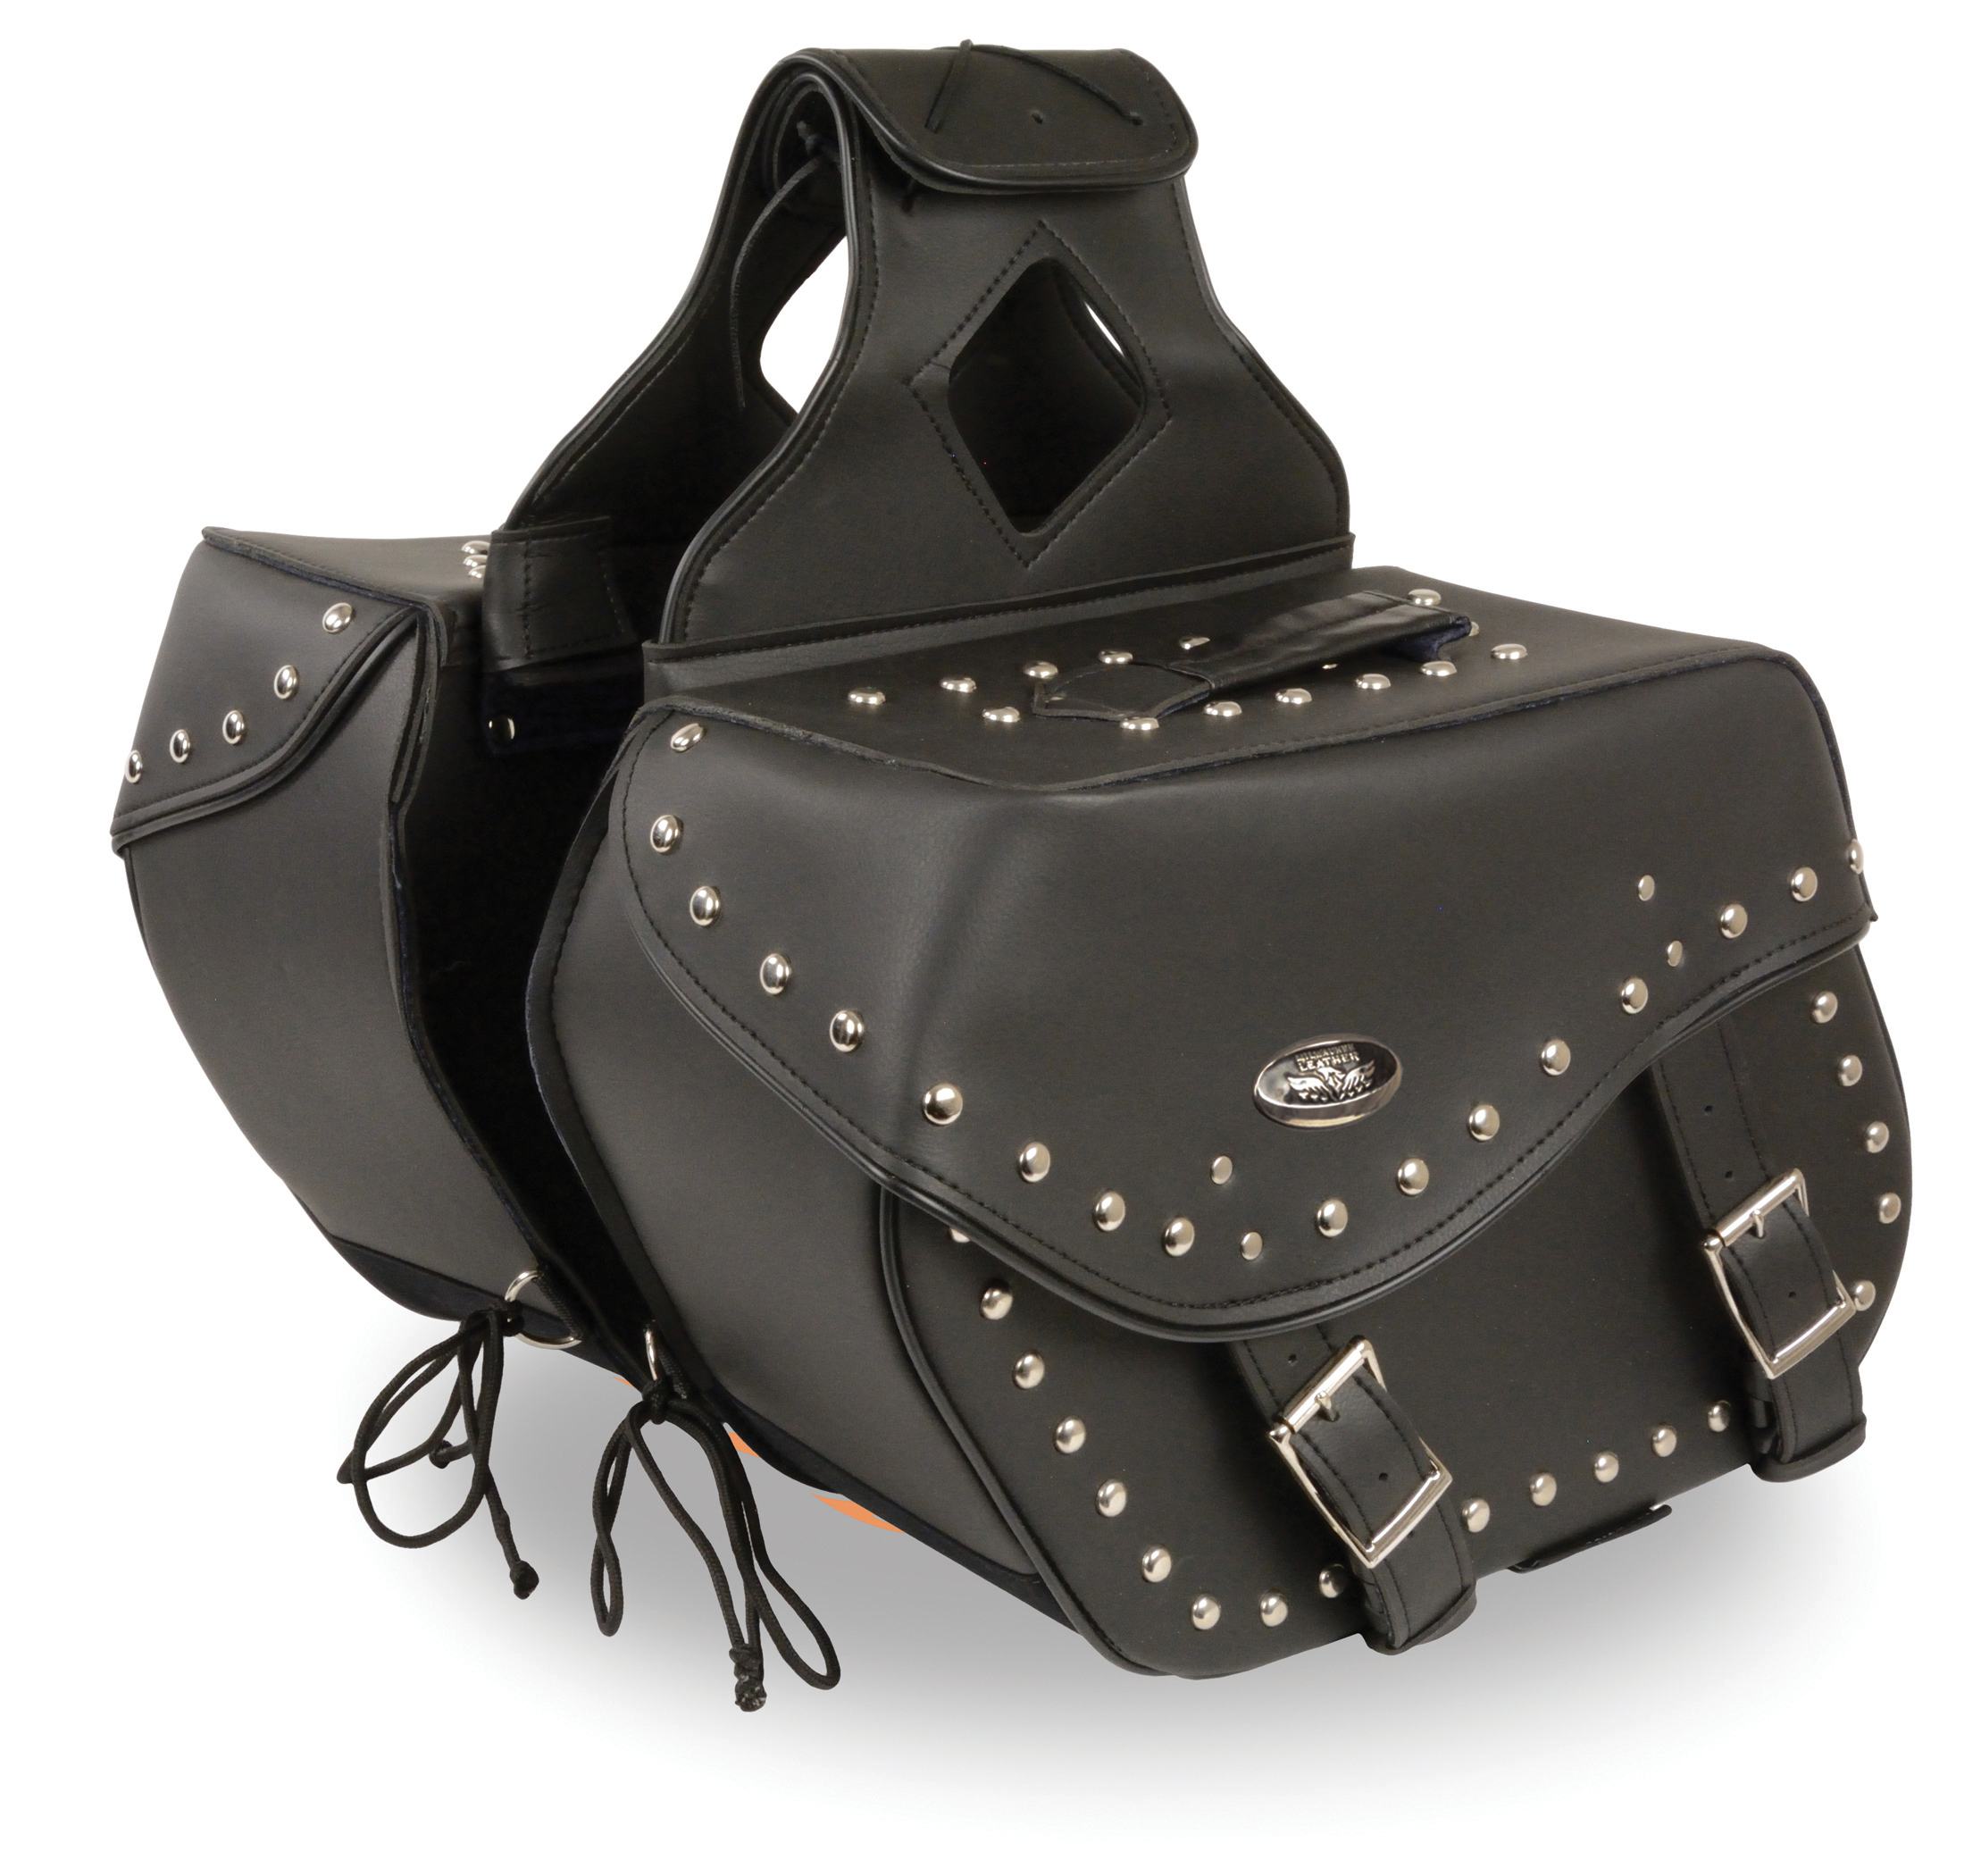 kawasaki motorcycle saddlebags